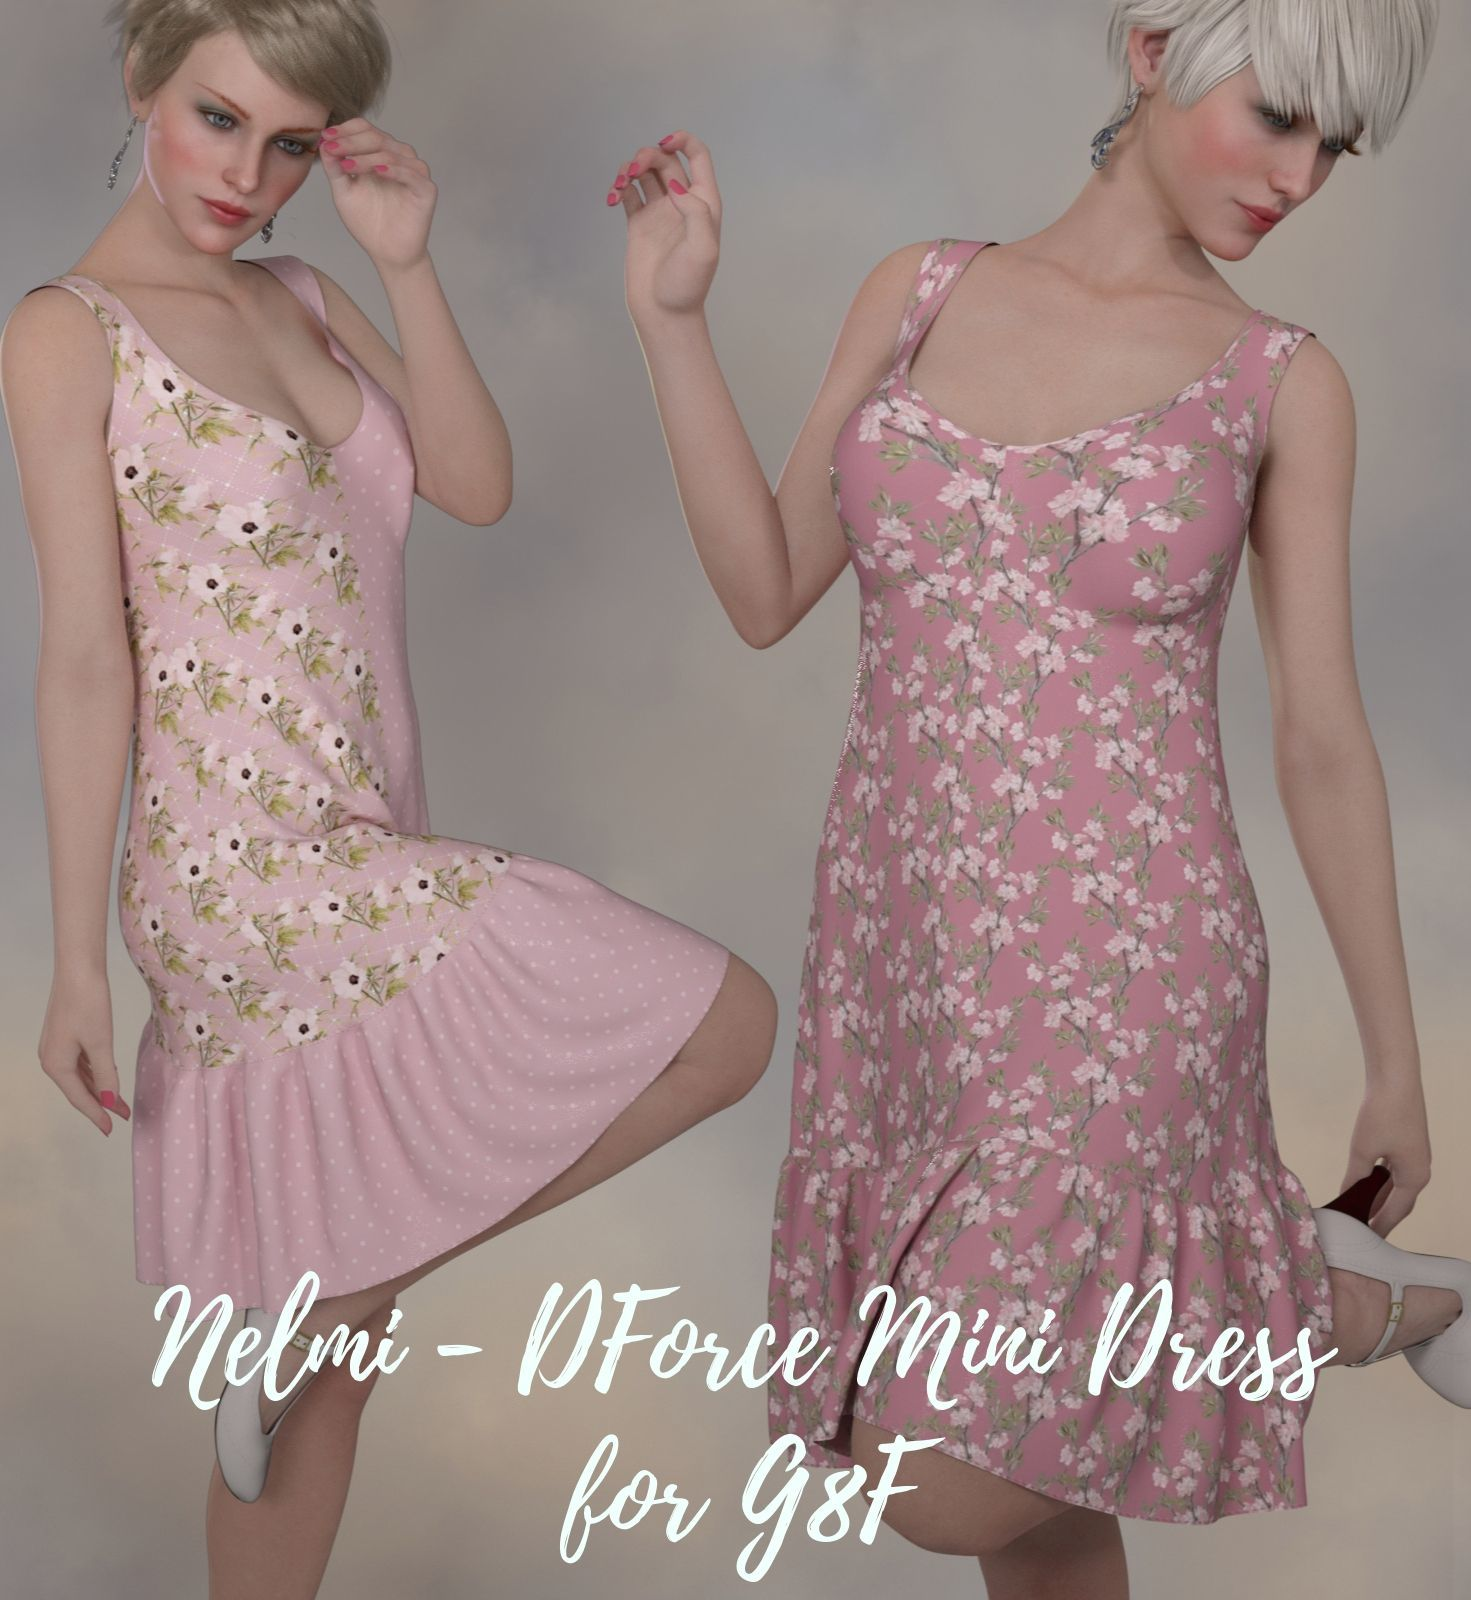 Nelmi - dForce Mini Dress G8F by nelmi